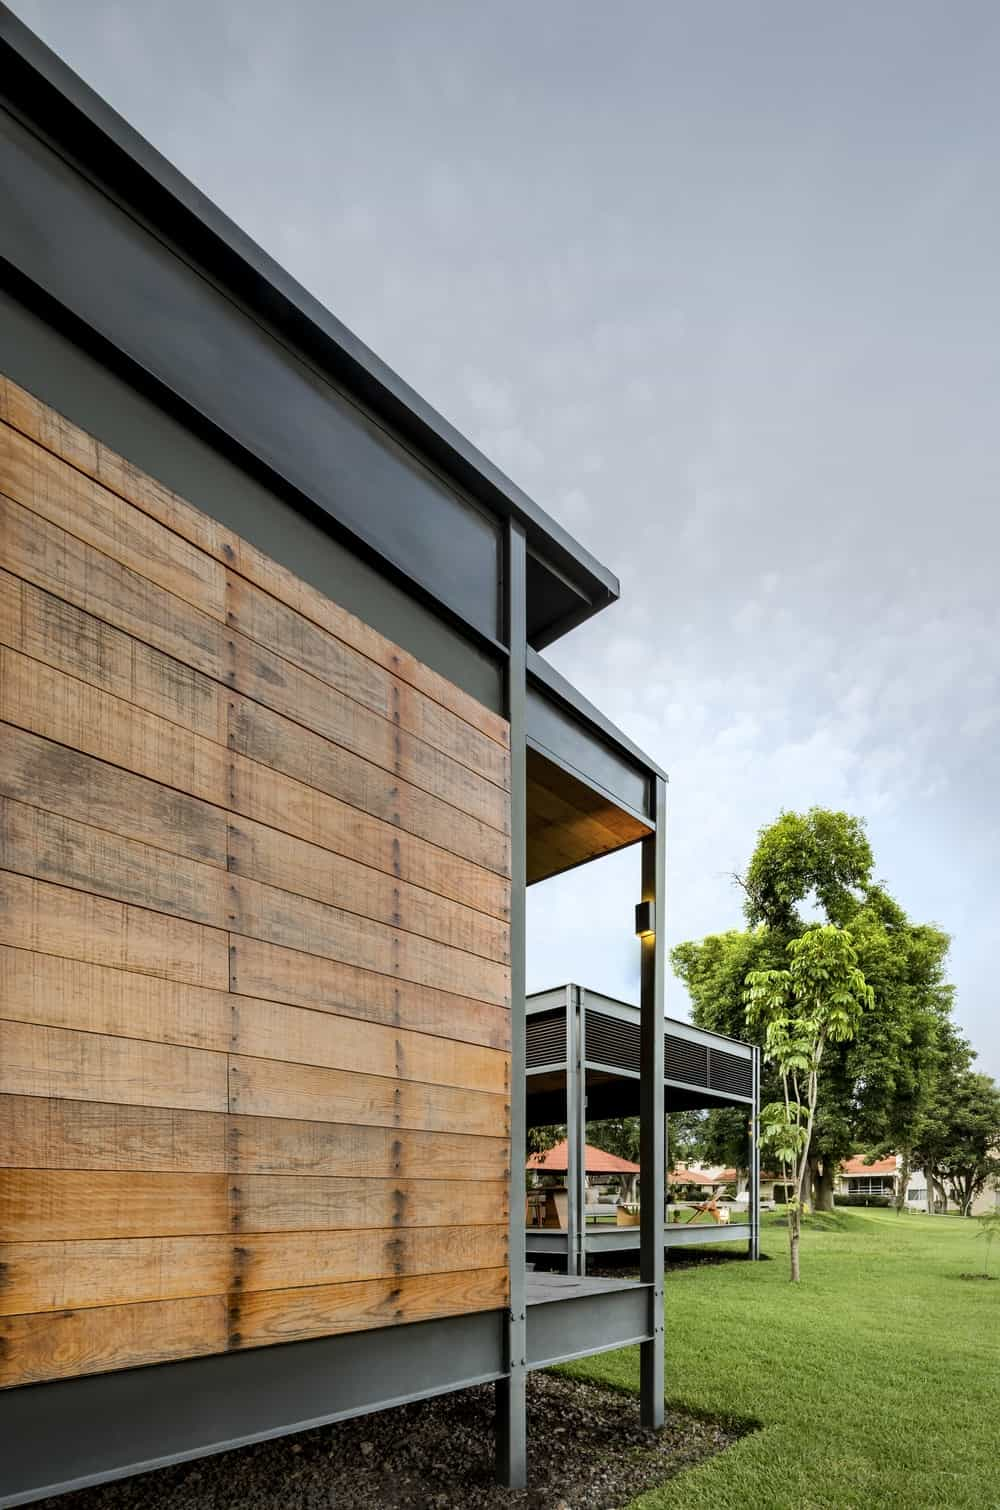 This side of the house shows the wooden exterior walls that give an earthy aesthetic to the cold gray steel beams of the exterior.